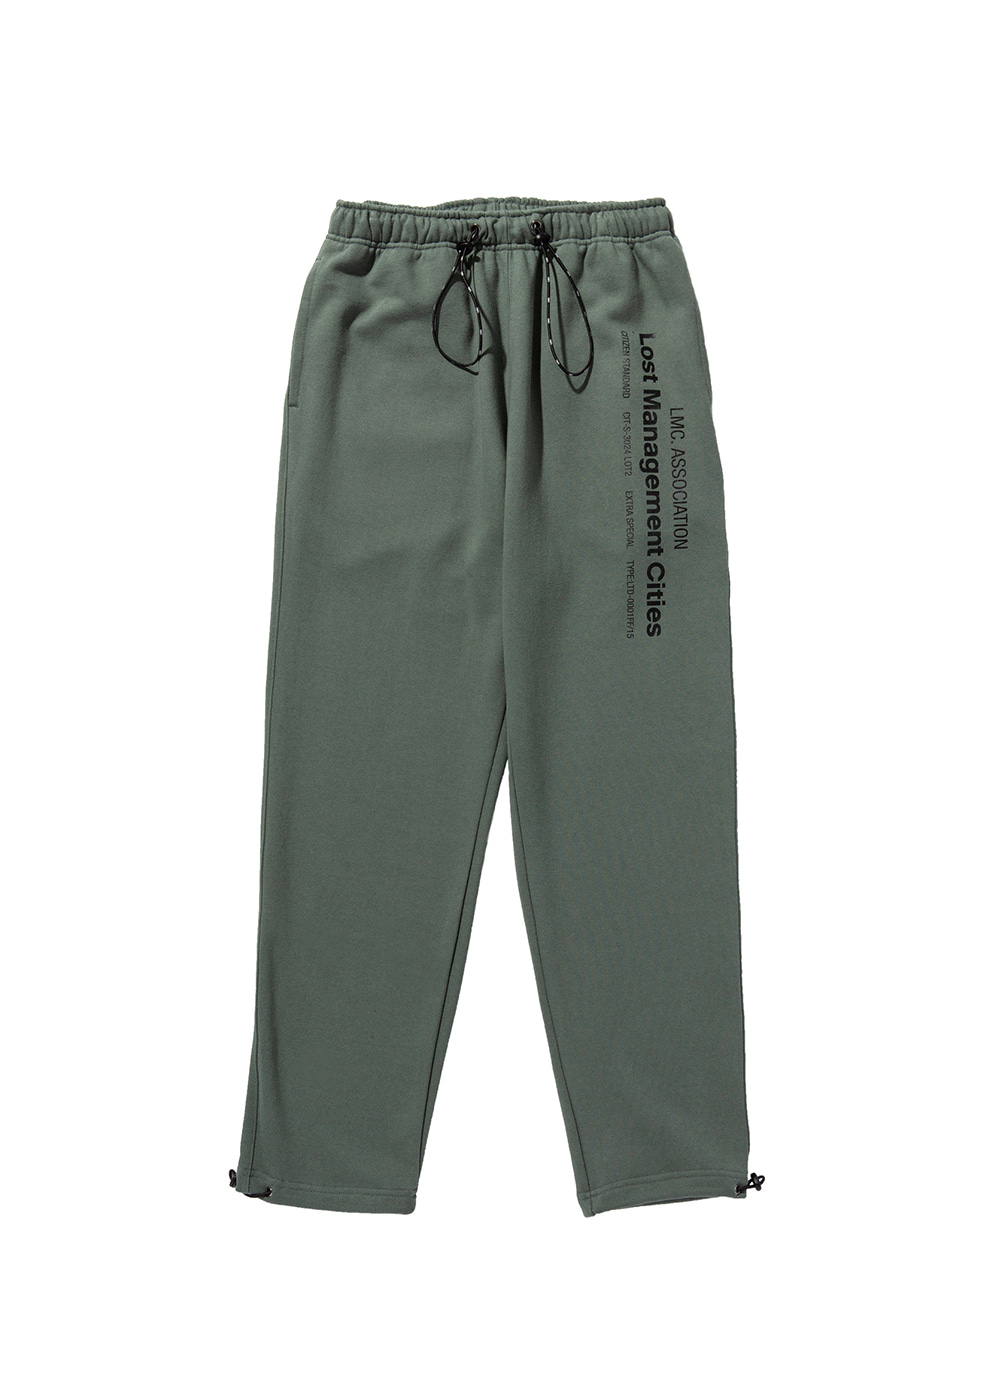 LMC MIL SWEAT PANTS olive